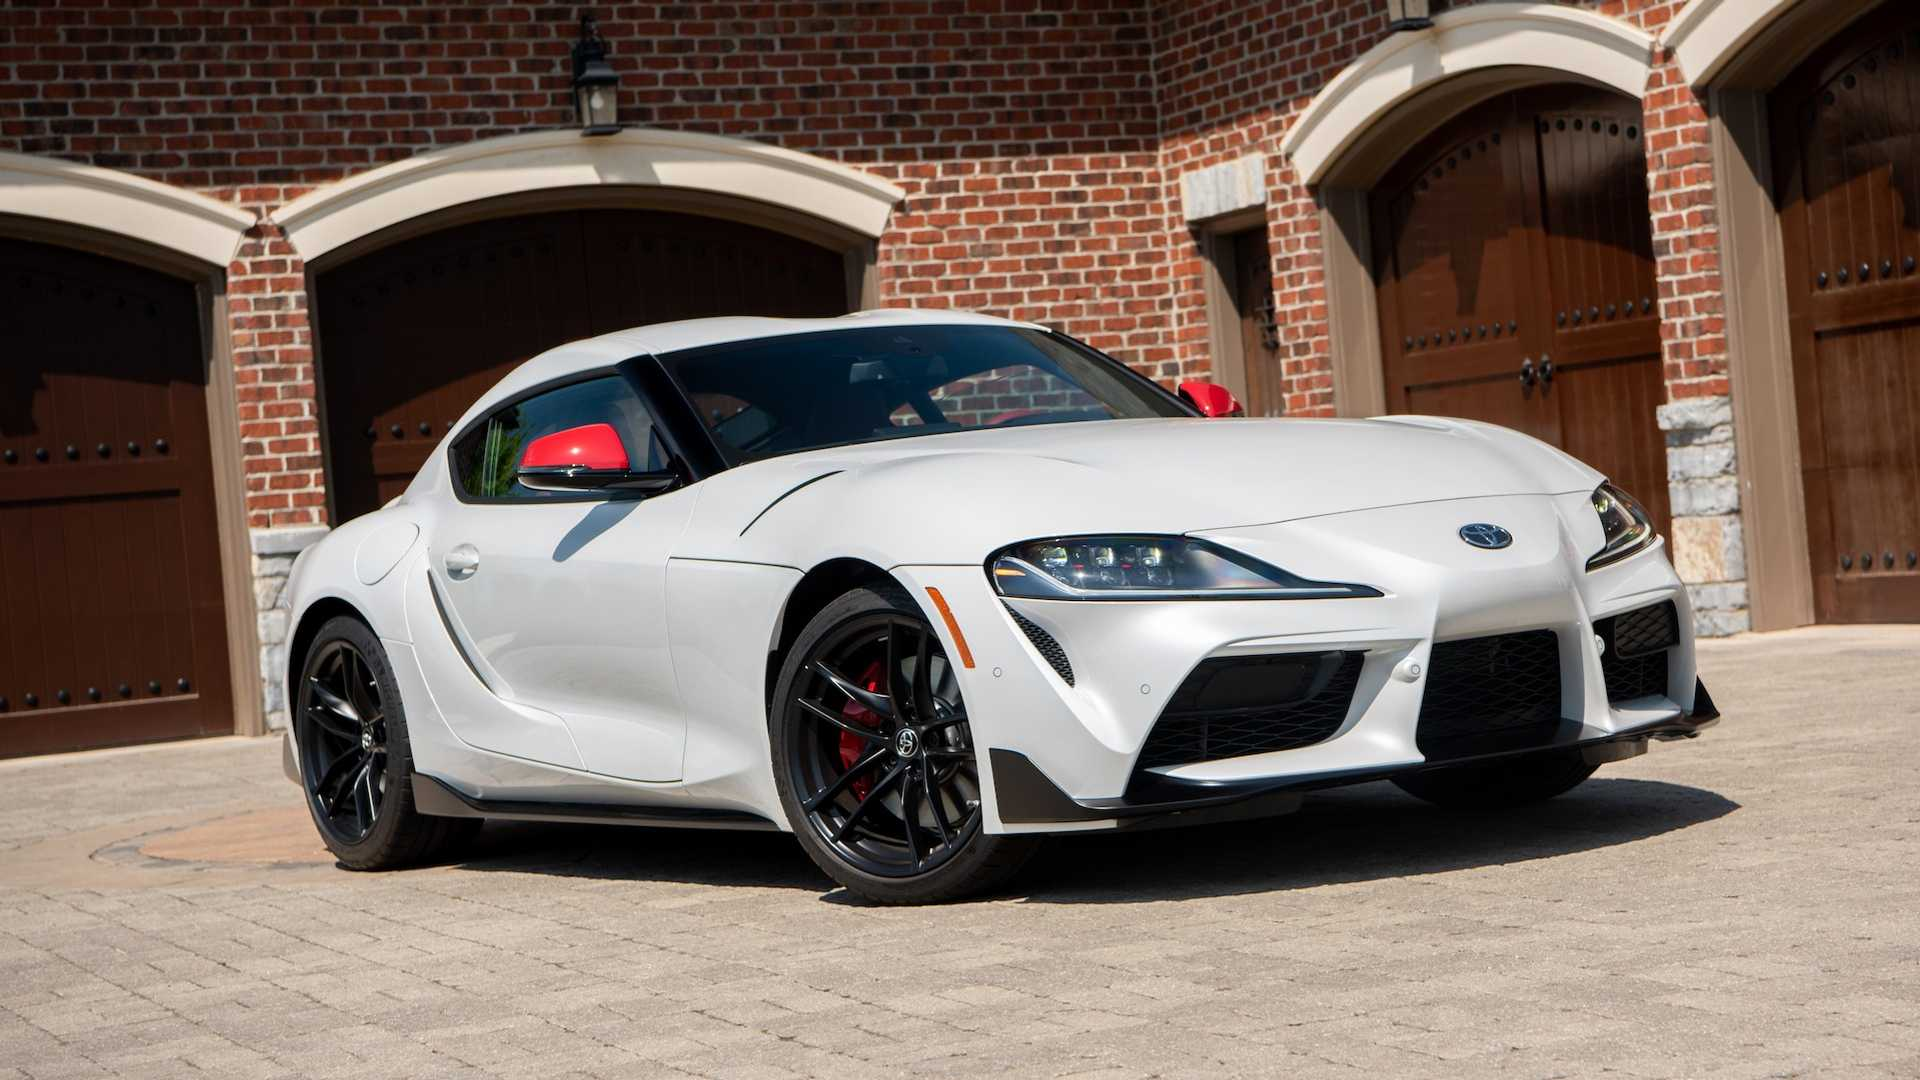 Toyota Dealer Asks 100k For Supra Launch Edition Because Capitalism